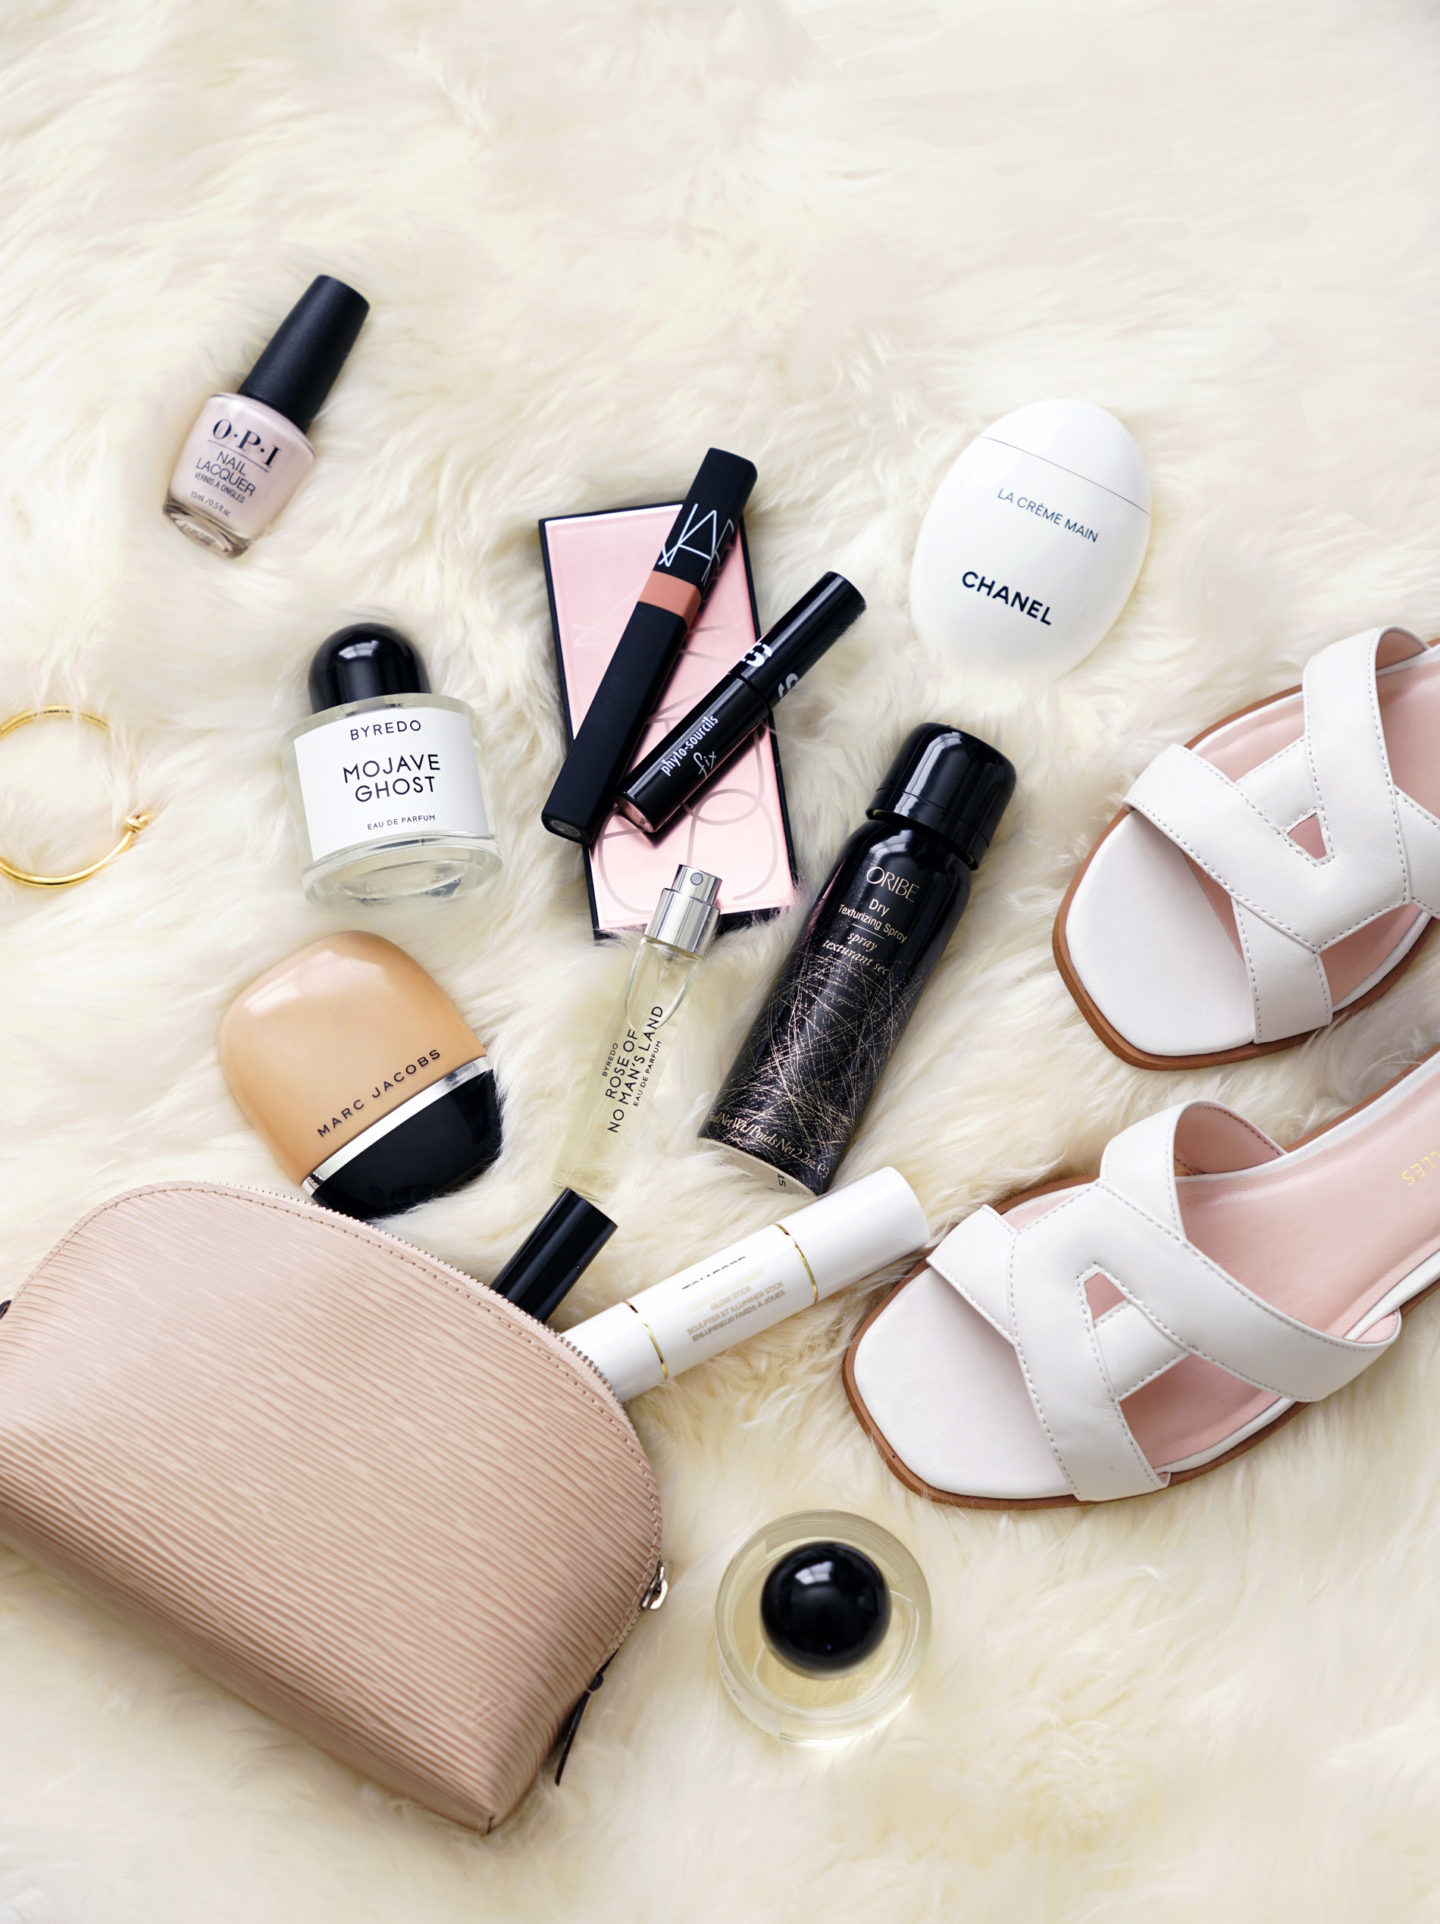 Flatlay Byredo, Marc Jacobs Shameless, Avec Les Files Sandals